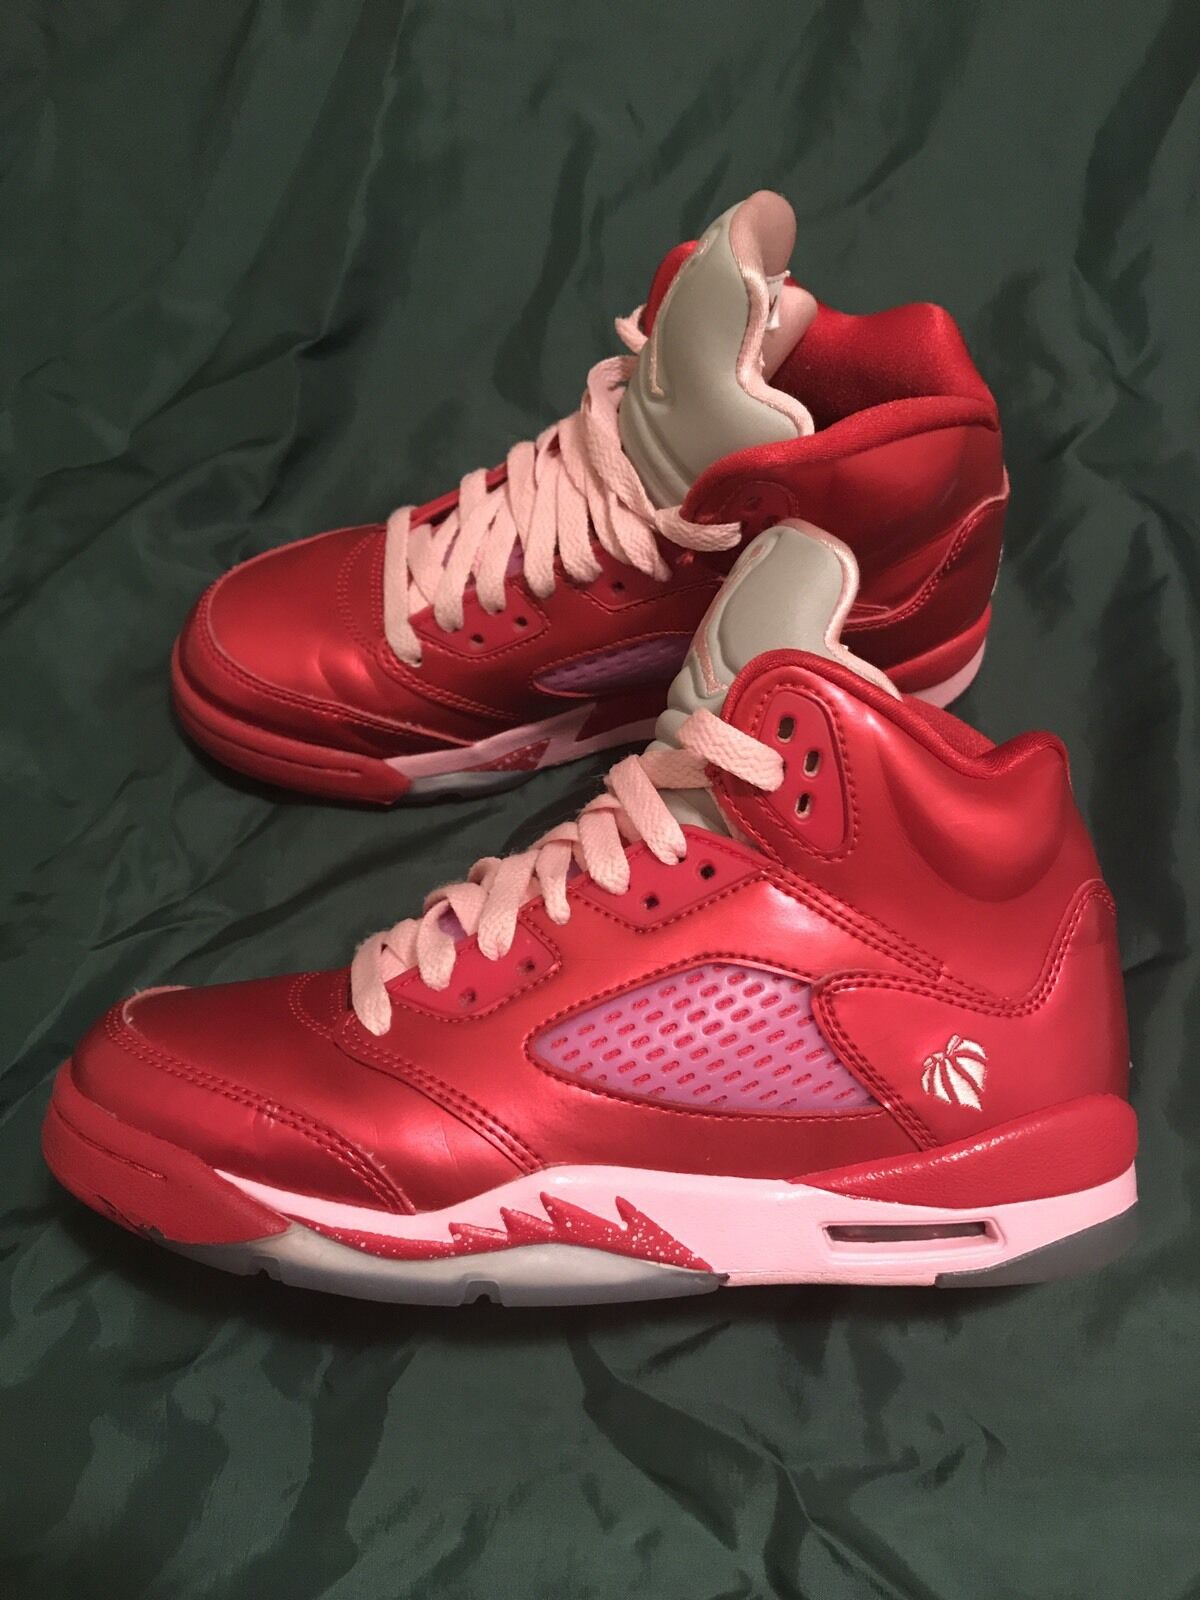 nike air jordan retro 5 valentines day red pink youth shoes size 4y - Nike Valentines Day Shoes